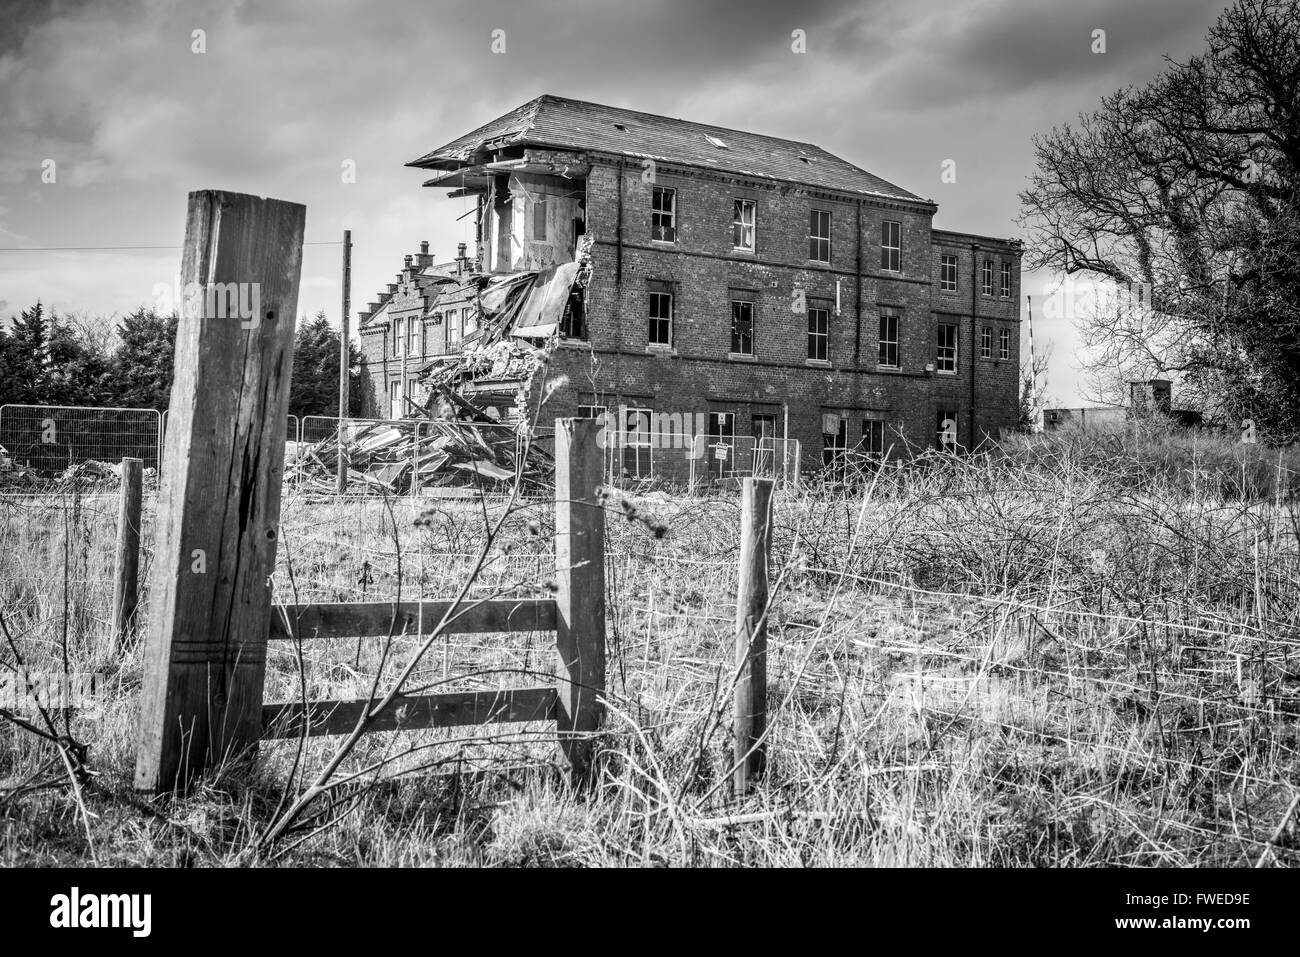 St Peters Boys School in Gainford, County Durham mid-way through being demolished. - Stock Image